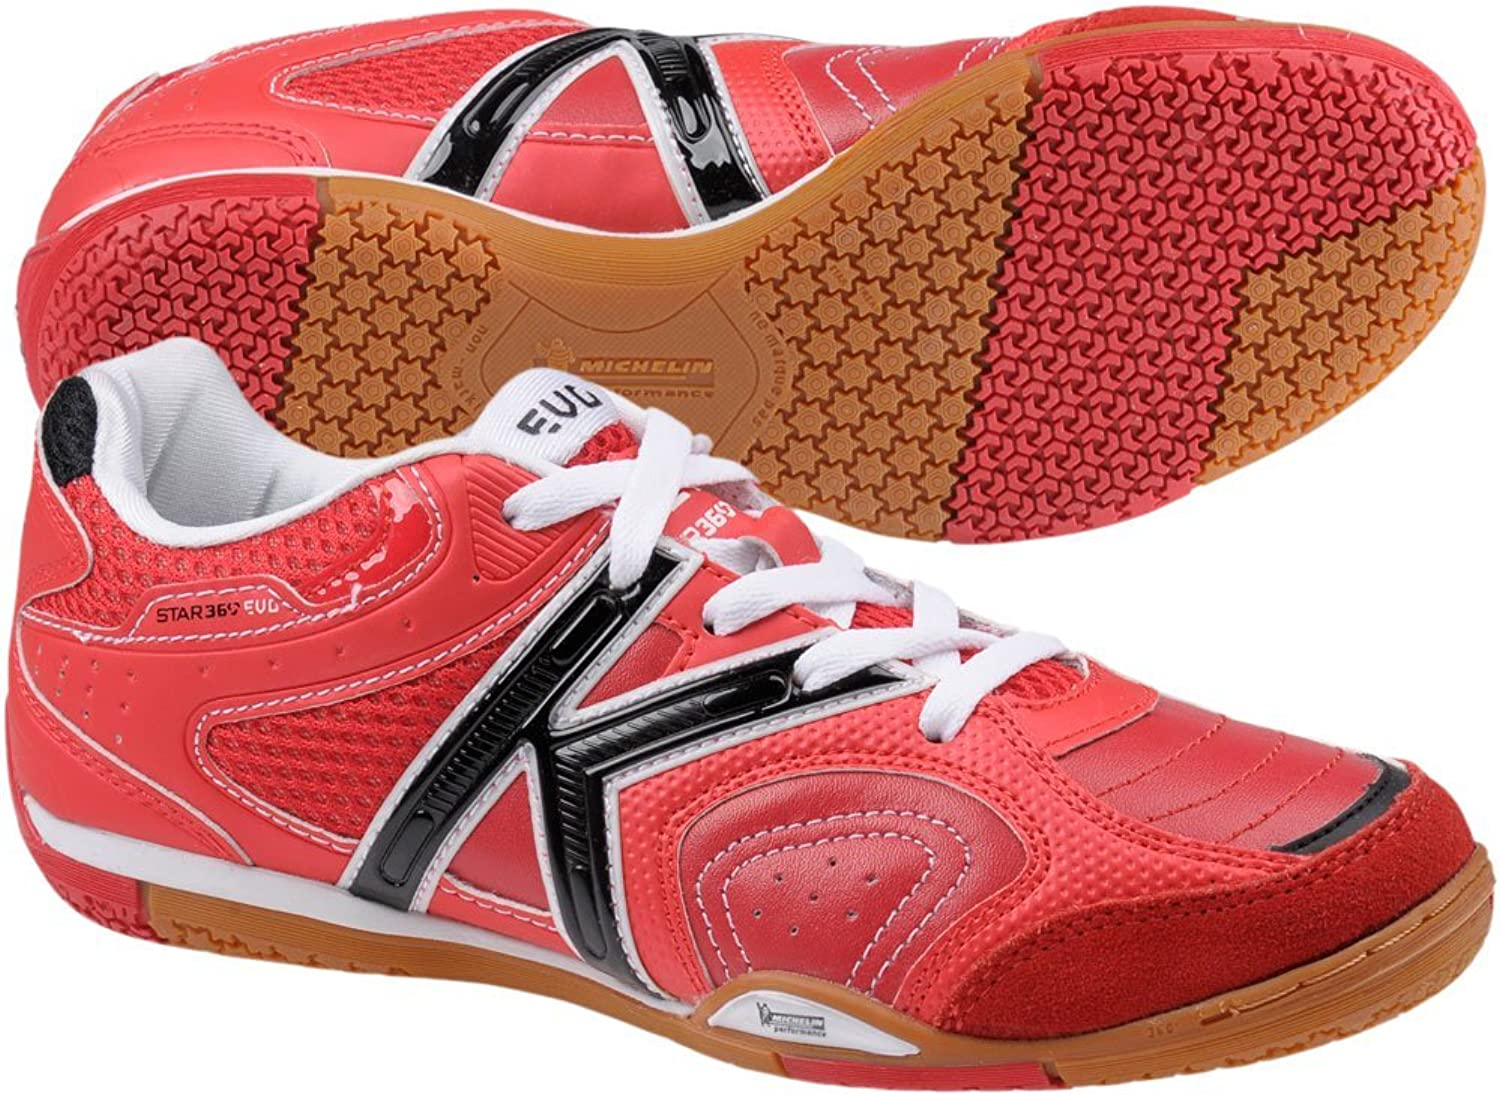 Kelme Men's Futsal shoes Red red